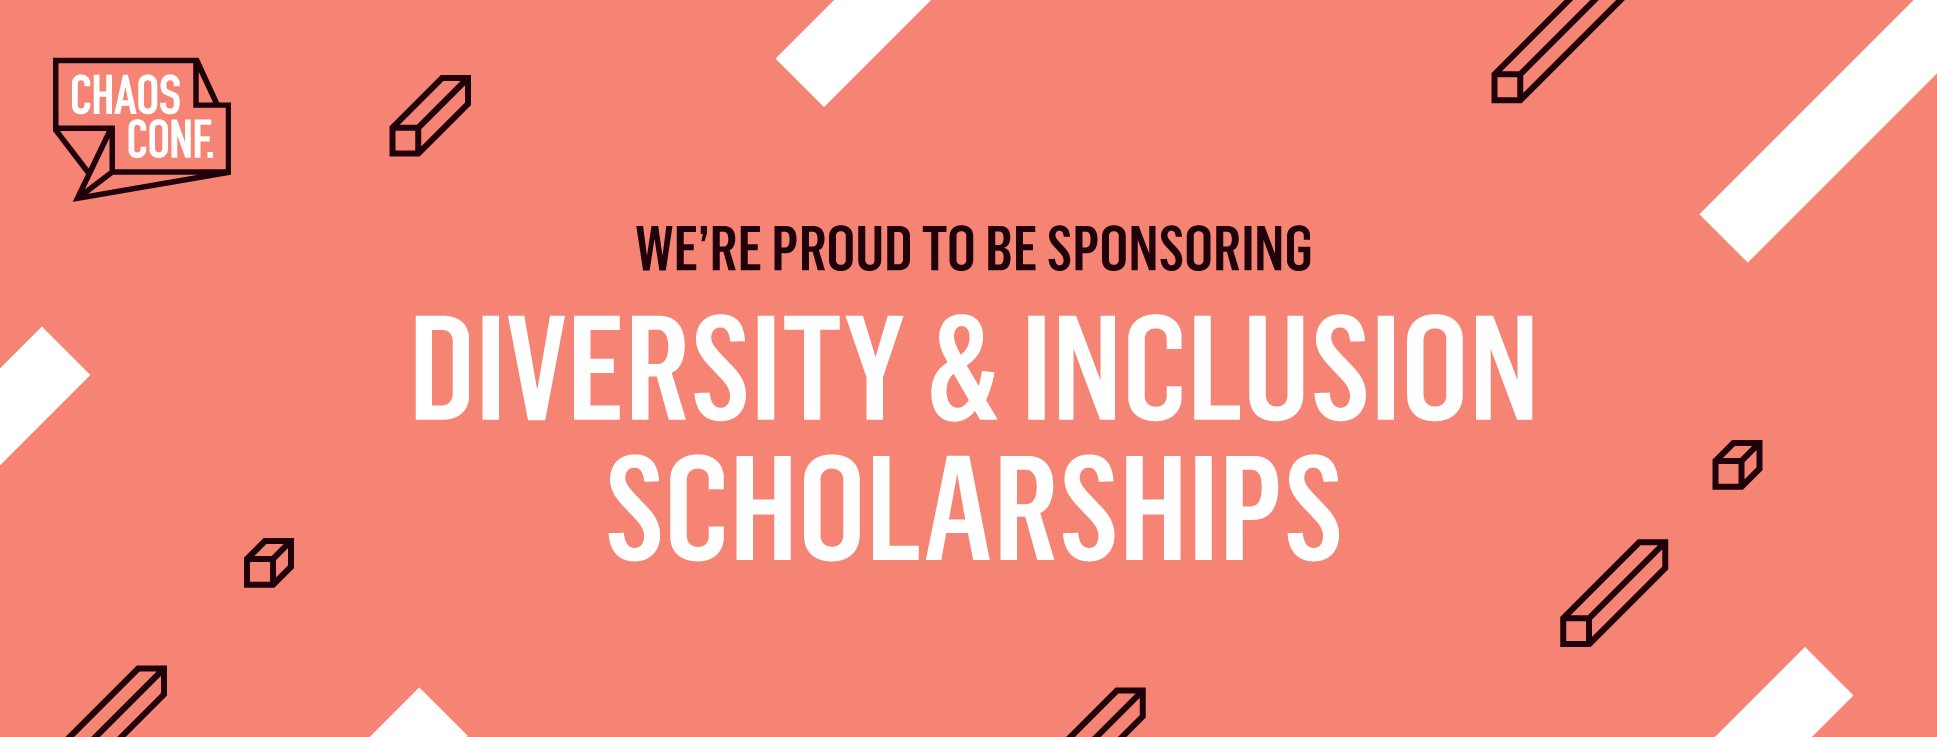 Diversity Sponsorship for Chaos Conf 2019!